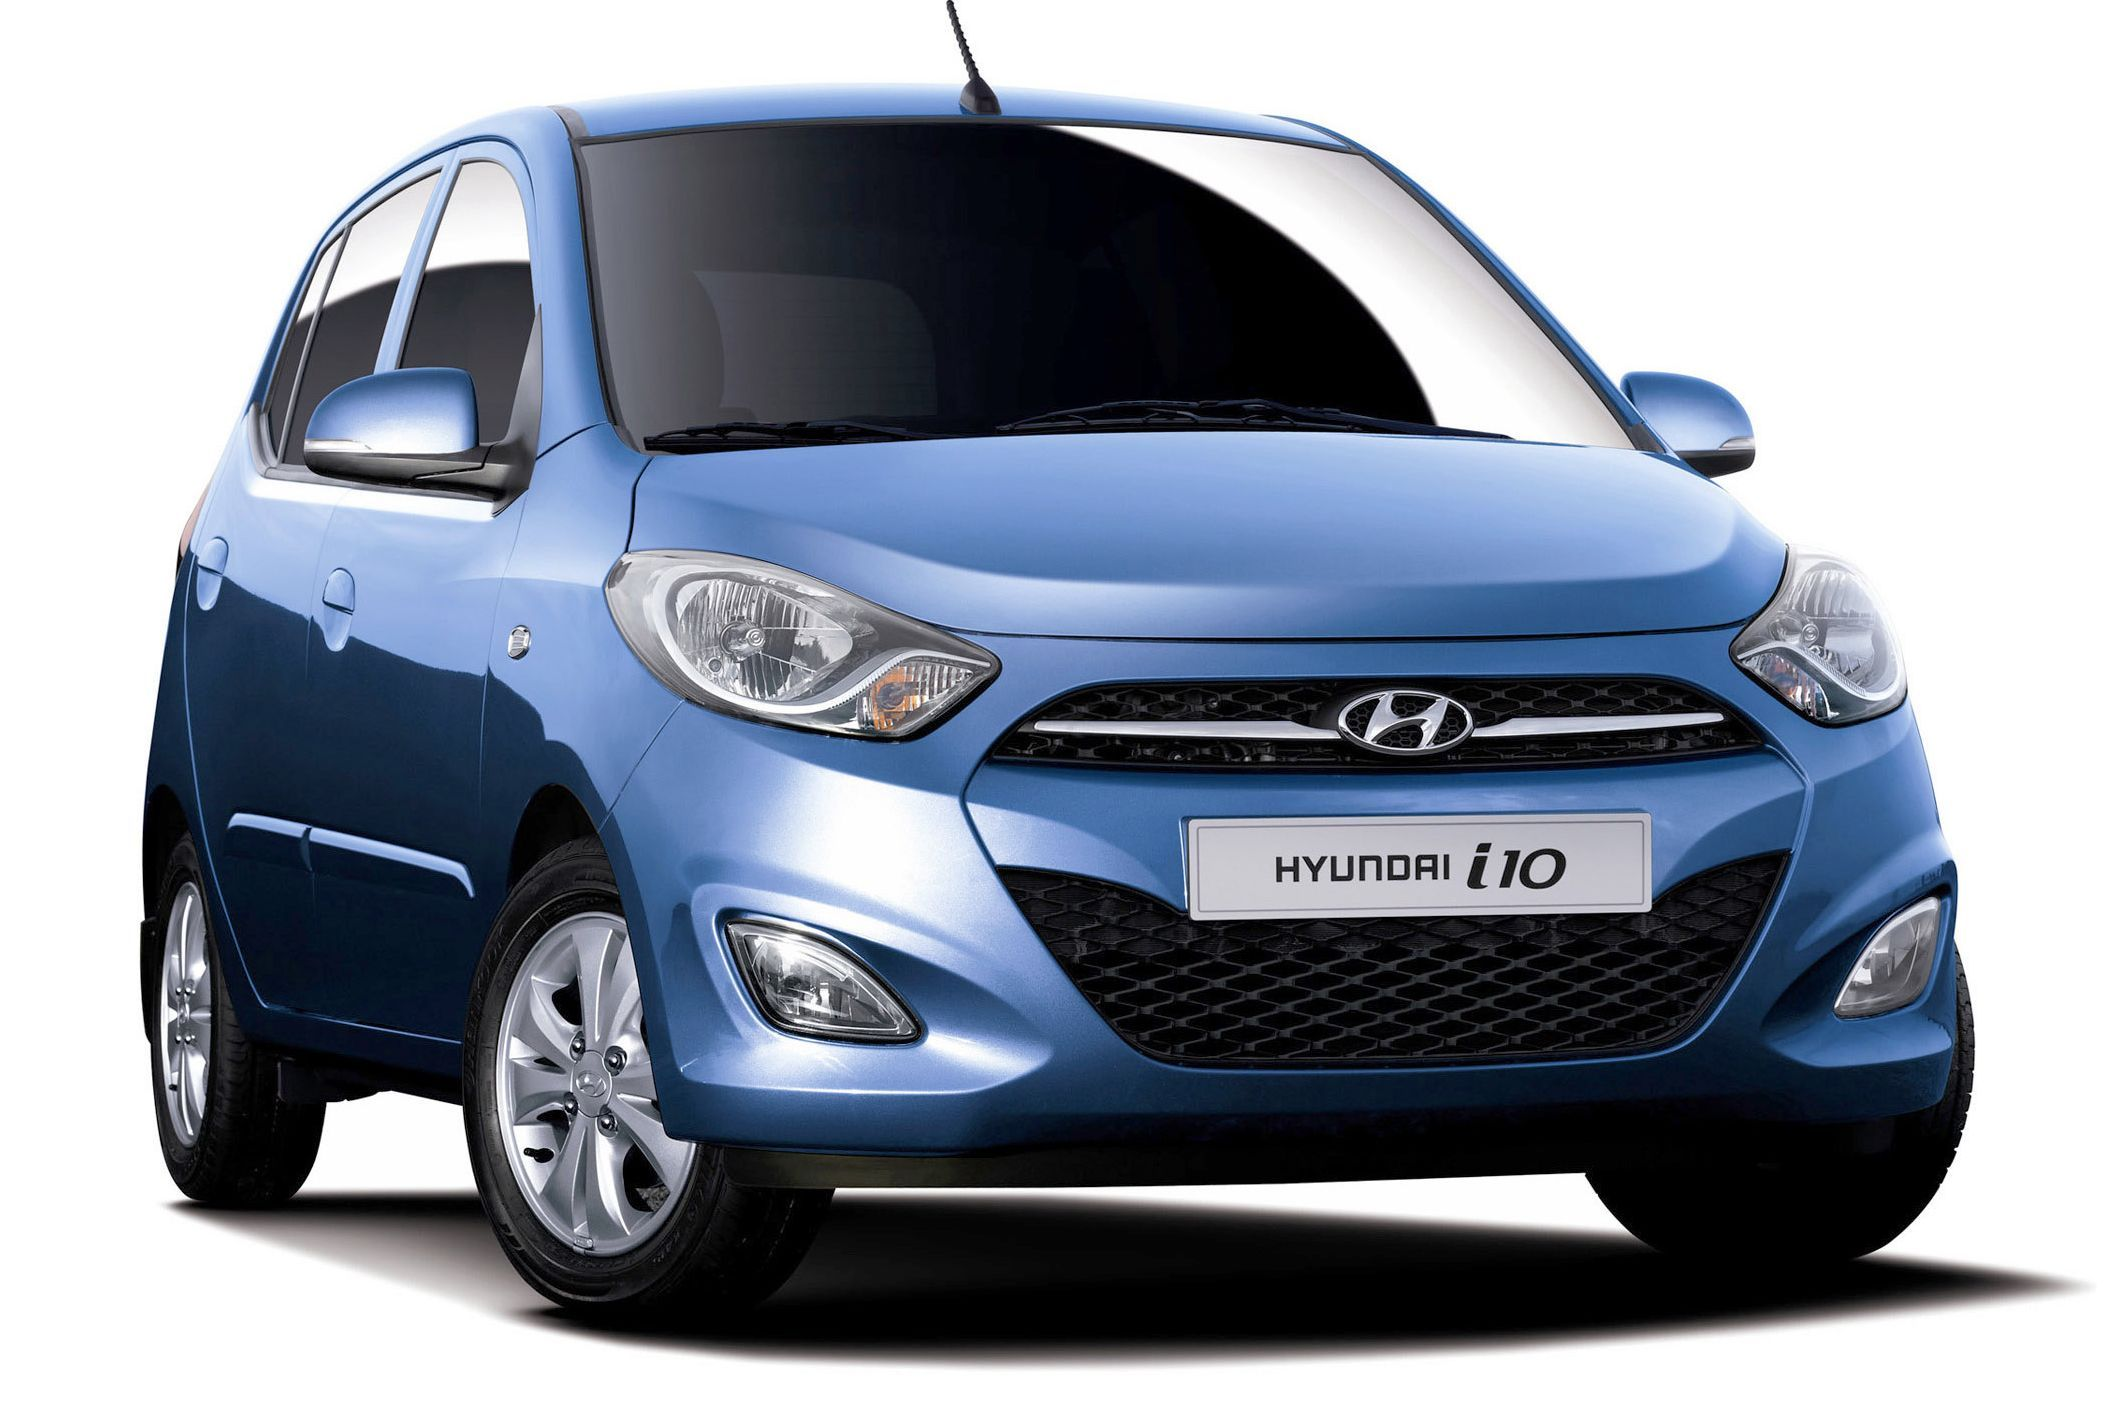 hyundai i10 4 5 doors air conditioned manual transmission radio cd rh pinterest com Automated Manual Transmission in Cars Transmission Repair Shops Near Me